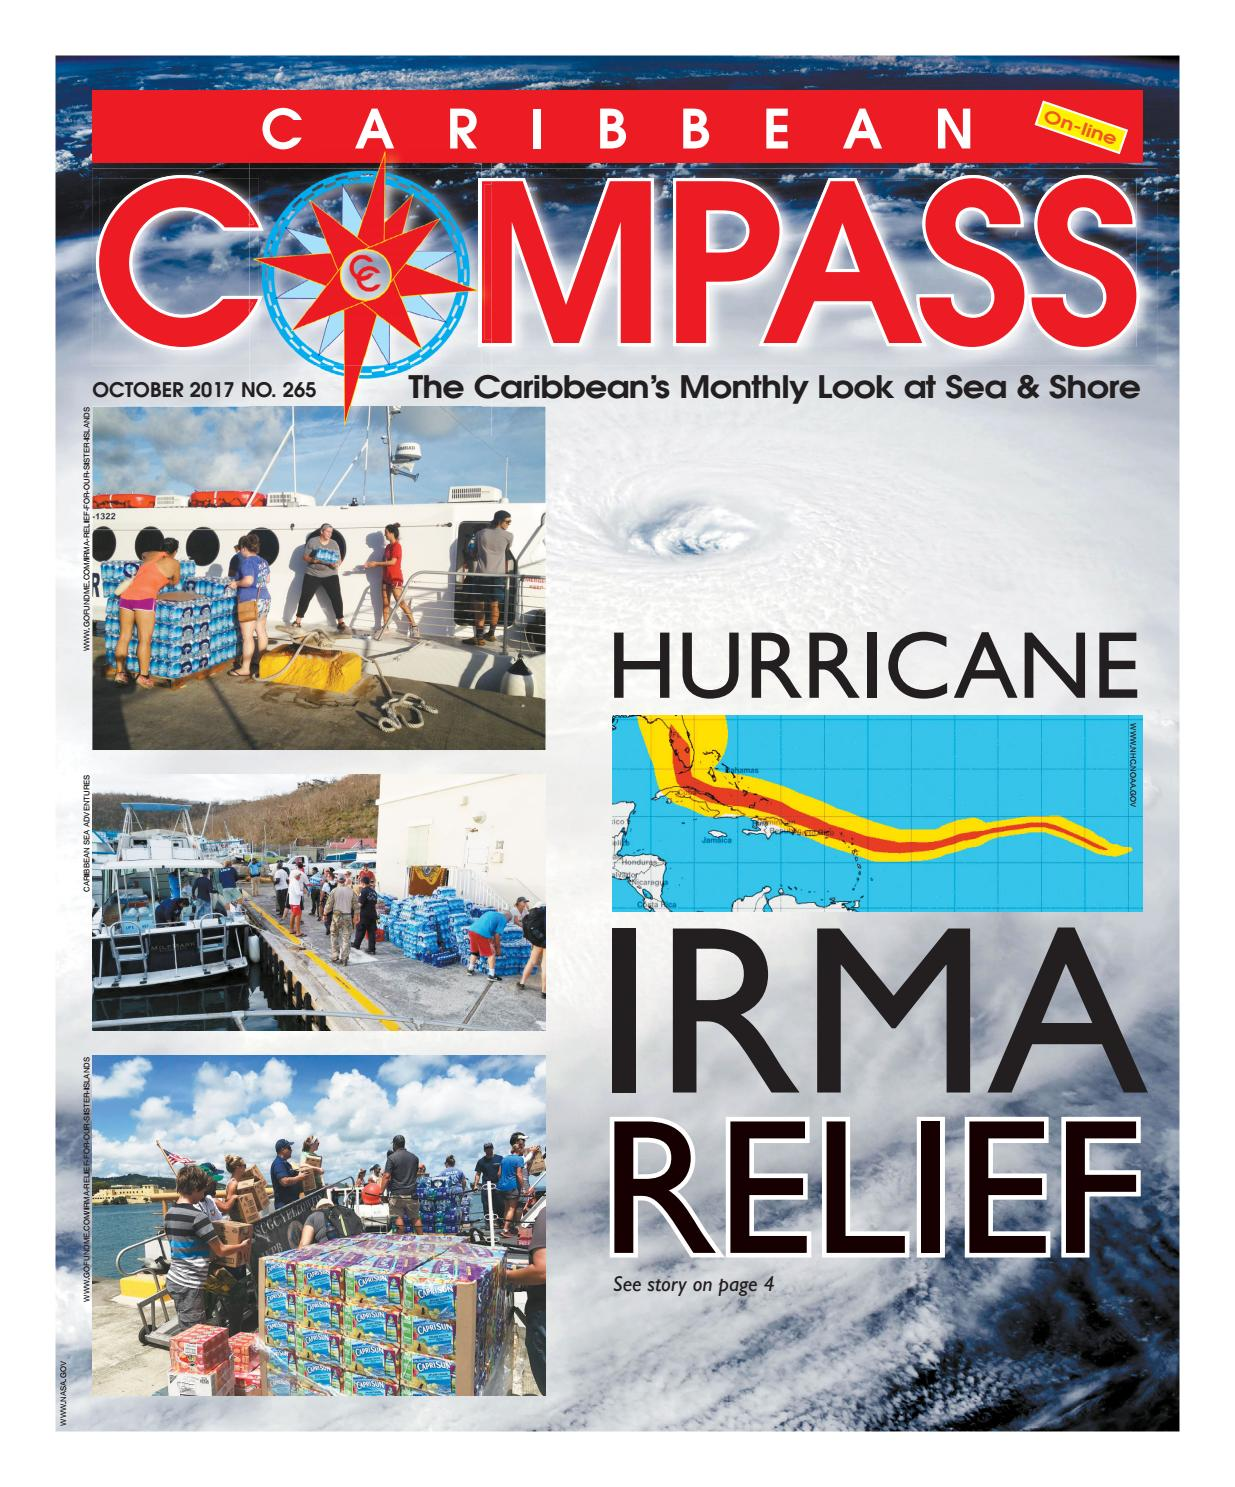 Caribbean Compass Yachting Magazine October 2017 By Quick Tip 16 Threeway Twoway Or Oneway Switch Misterfixit Publishing Issuu